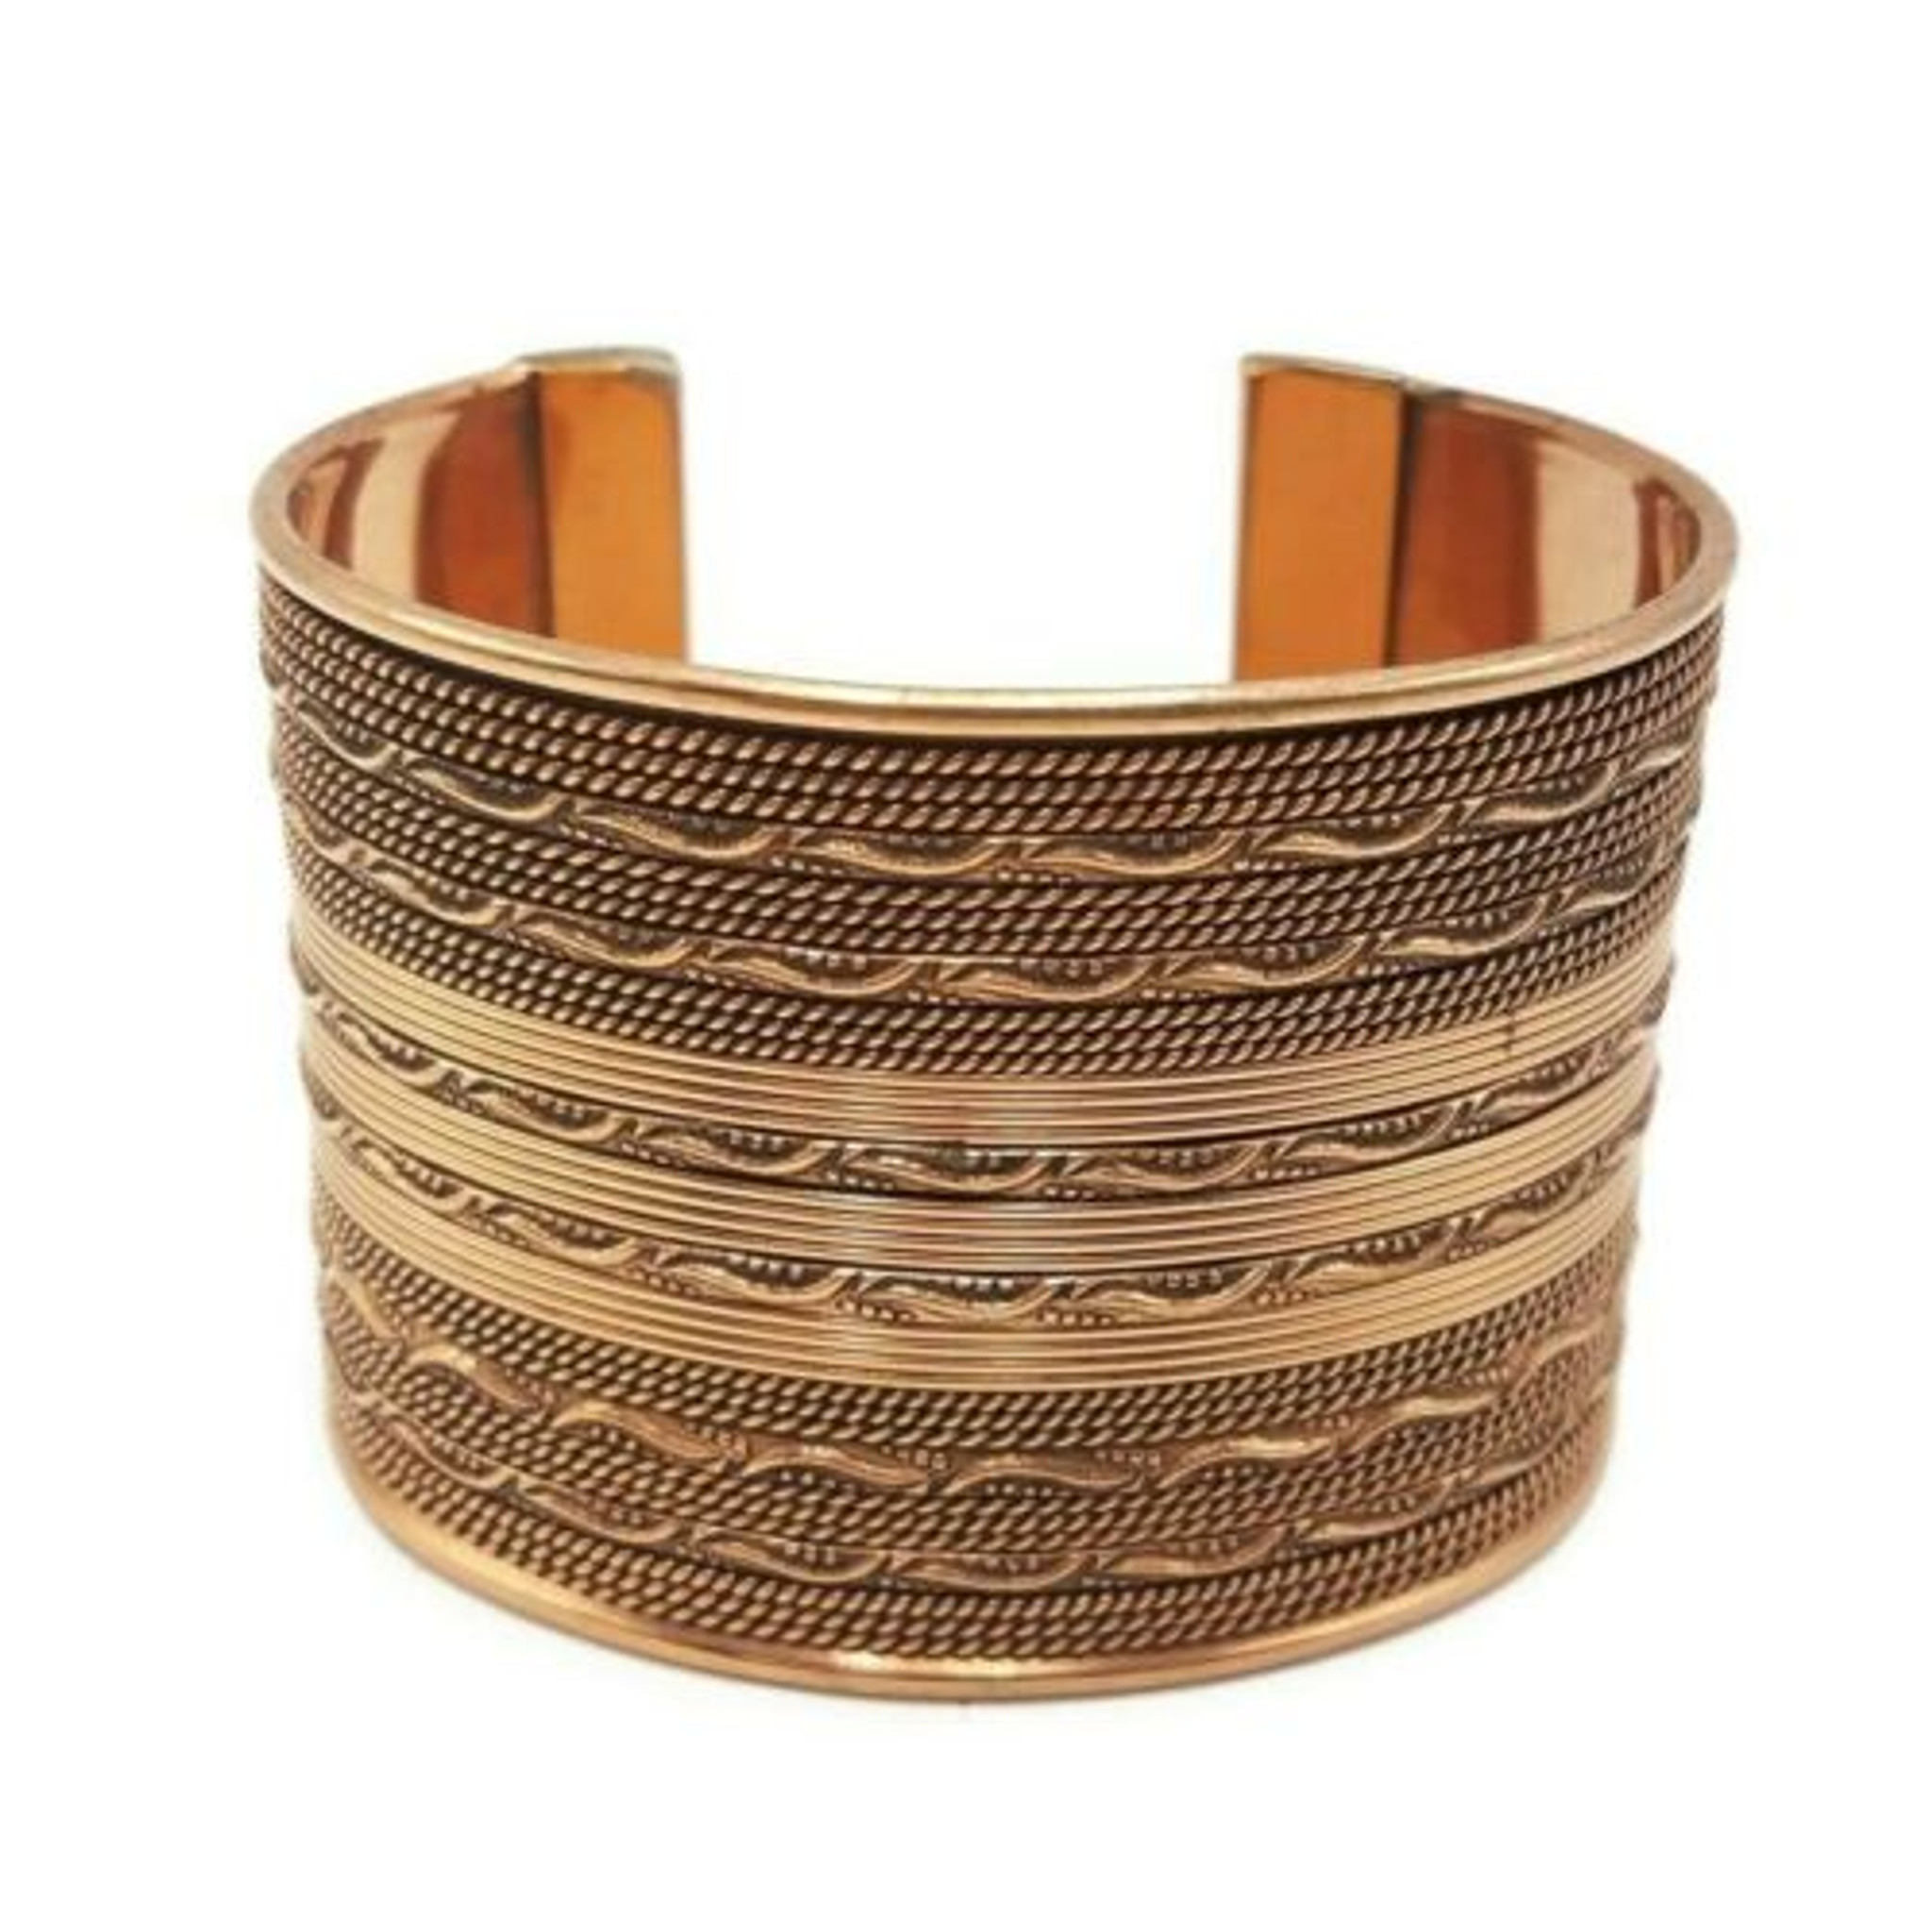 Chunky Copper Plated Cuff Bracelet with Copper Wire Design